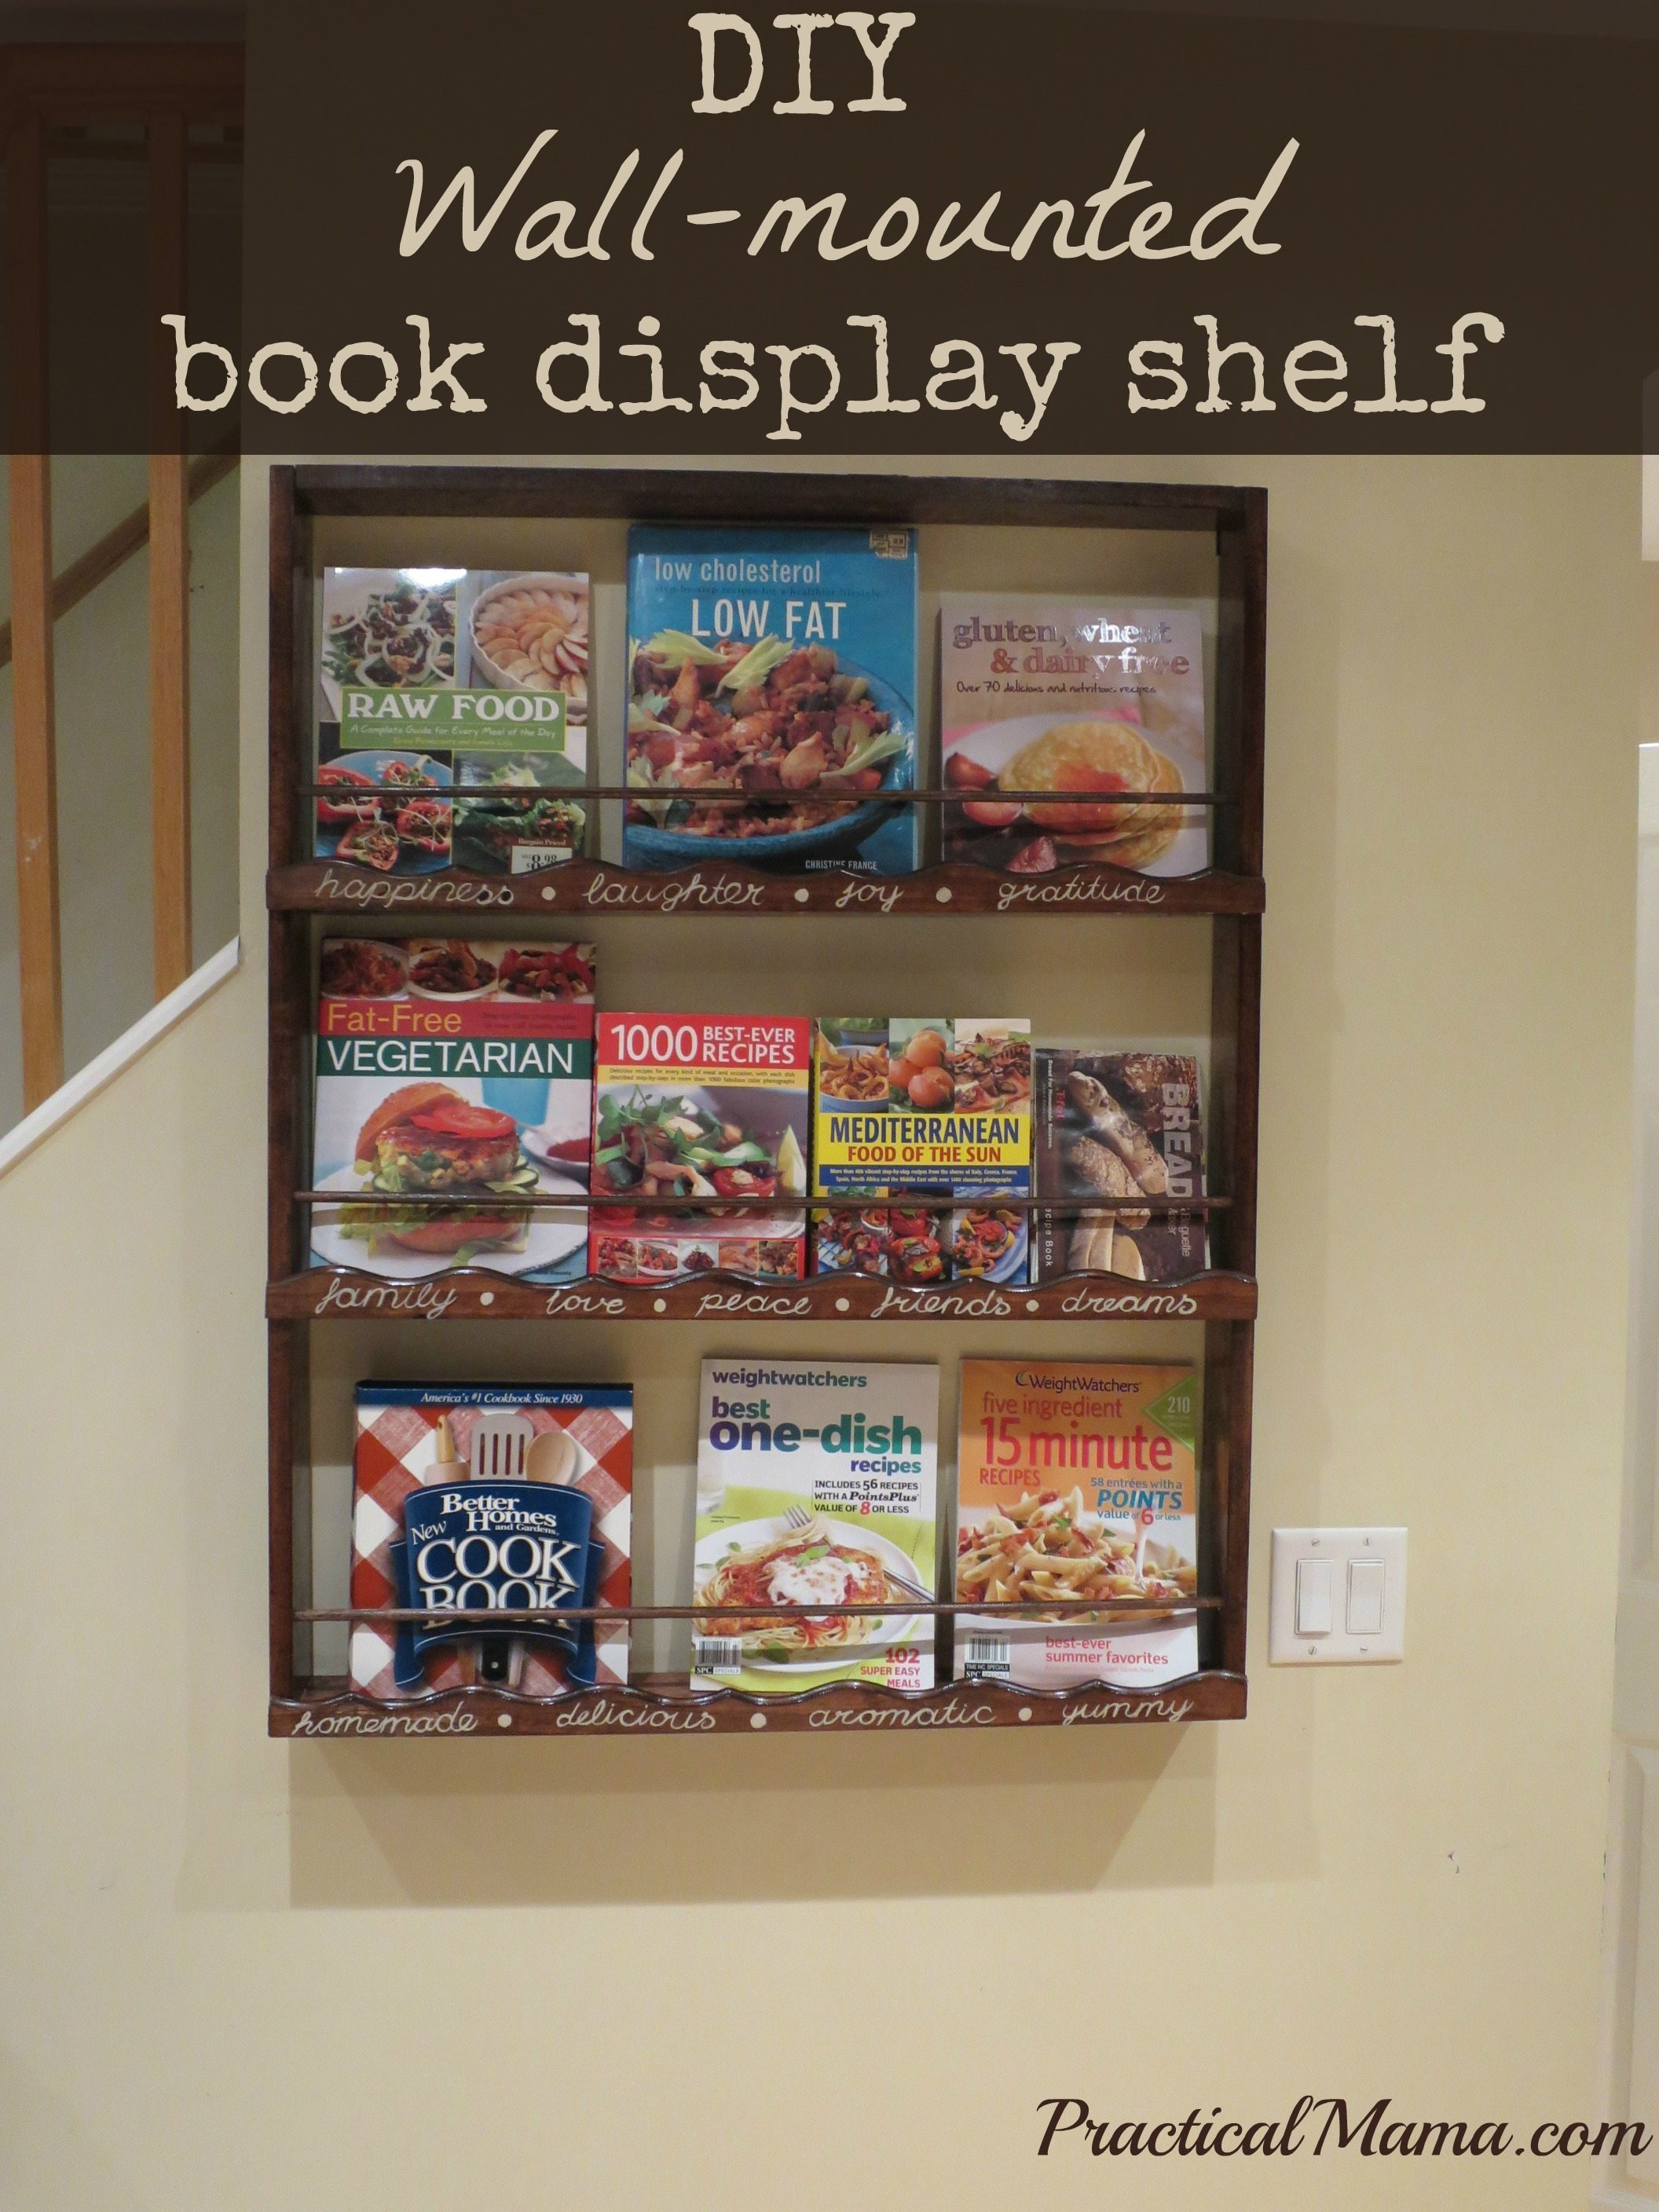 Diy wall mounted book display shelf for my cookbooks bookdisplayshelf forumfinder